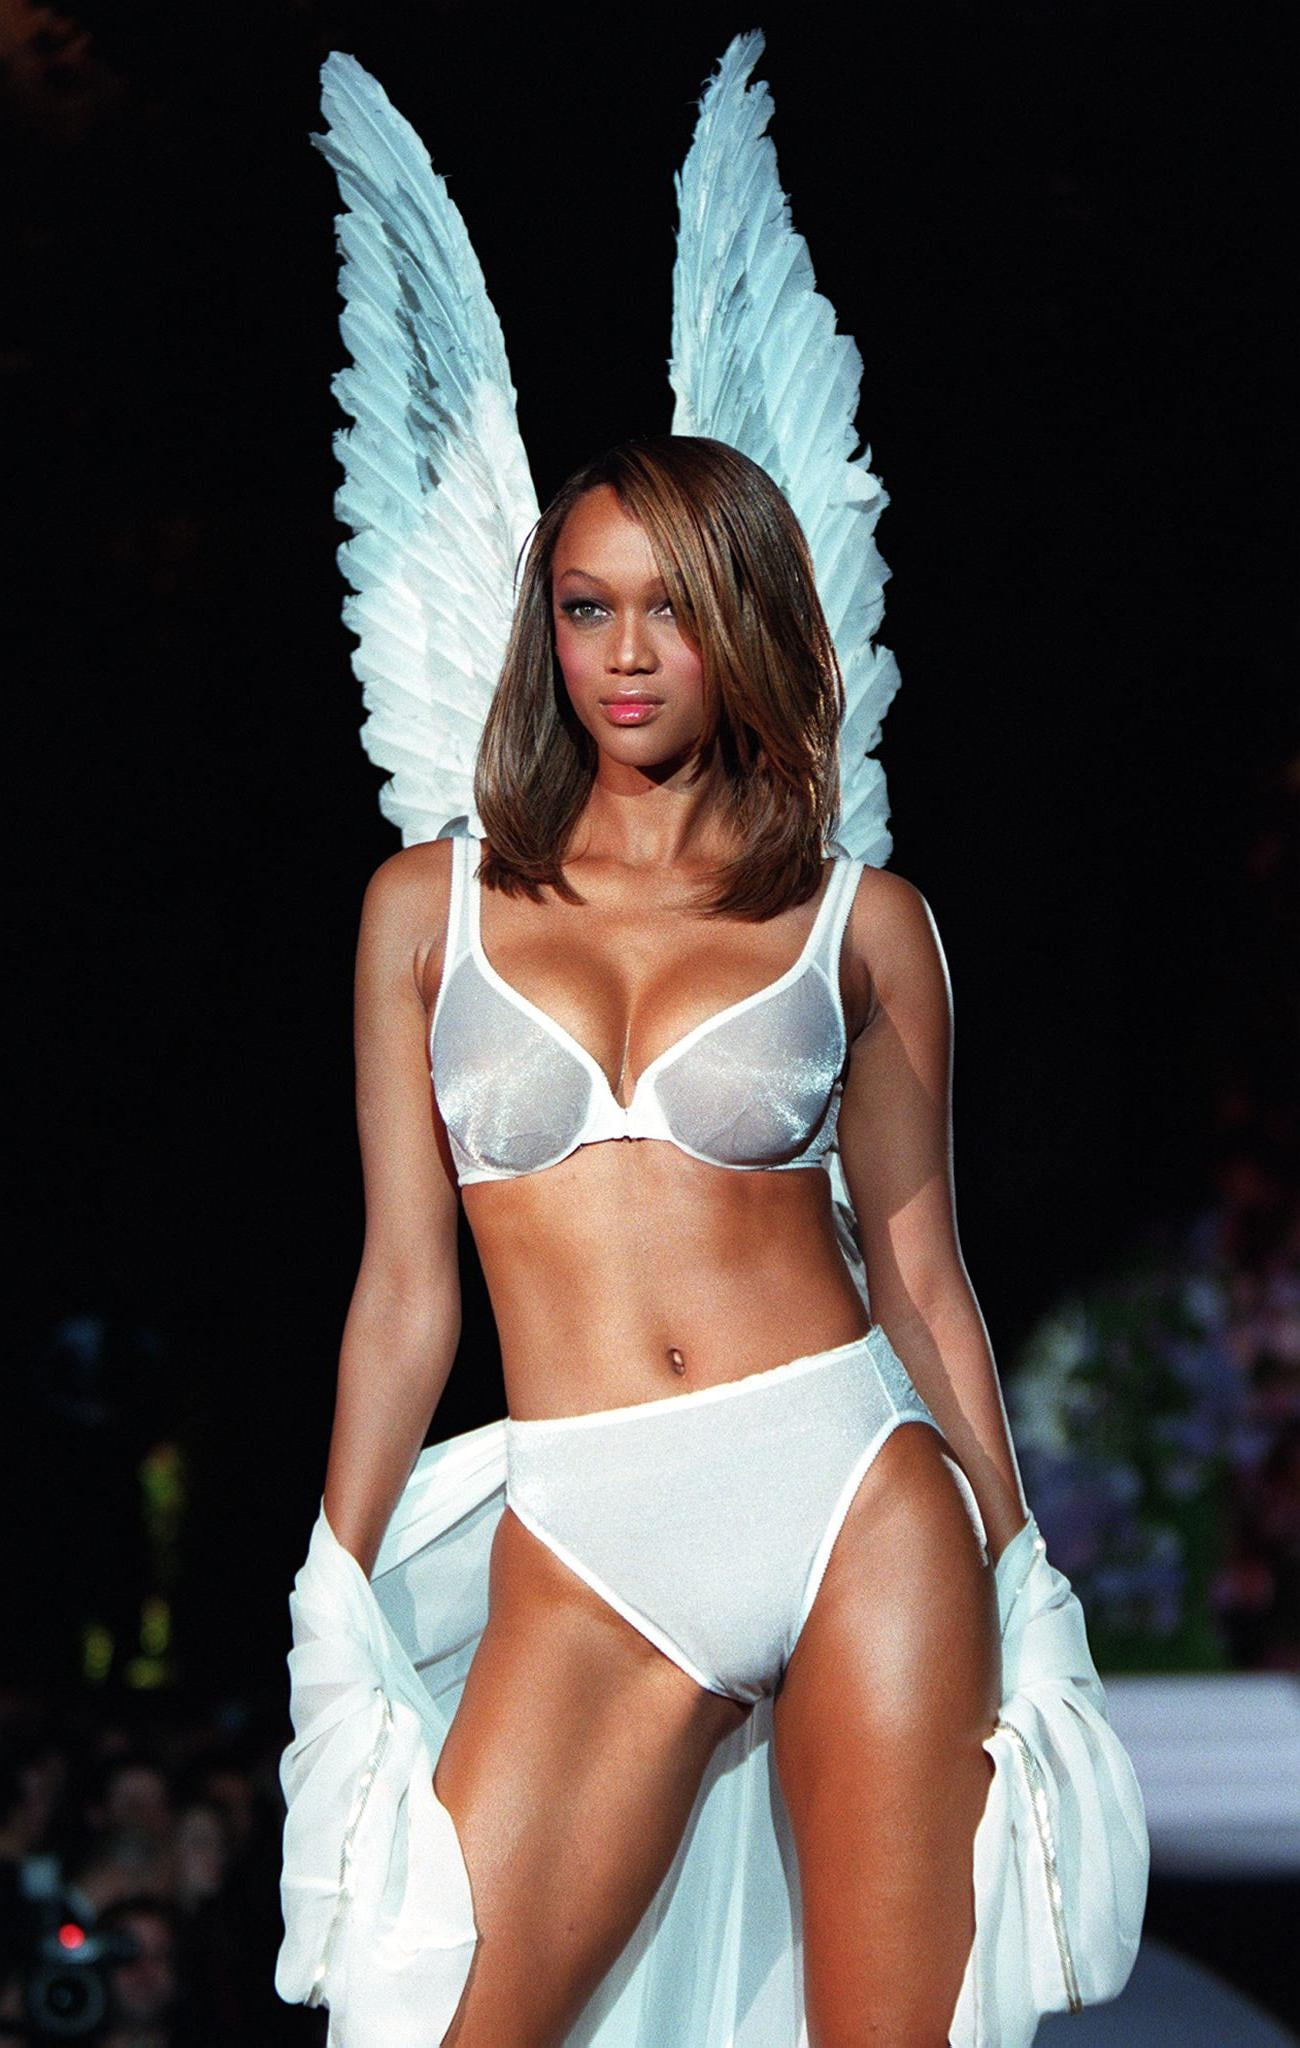 NEW YORK, UNITED STATES:  Model Tyra Banks wears a white Angel bra and matching panties with white Angel wings during the Victoria's Secret Spring 1998 Fashion show 03 February in New York.     AFP PHOTO/Jon LEVY (Photo credit should read JON LEVY/AFP/Getty Images)